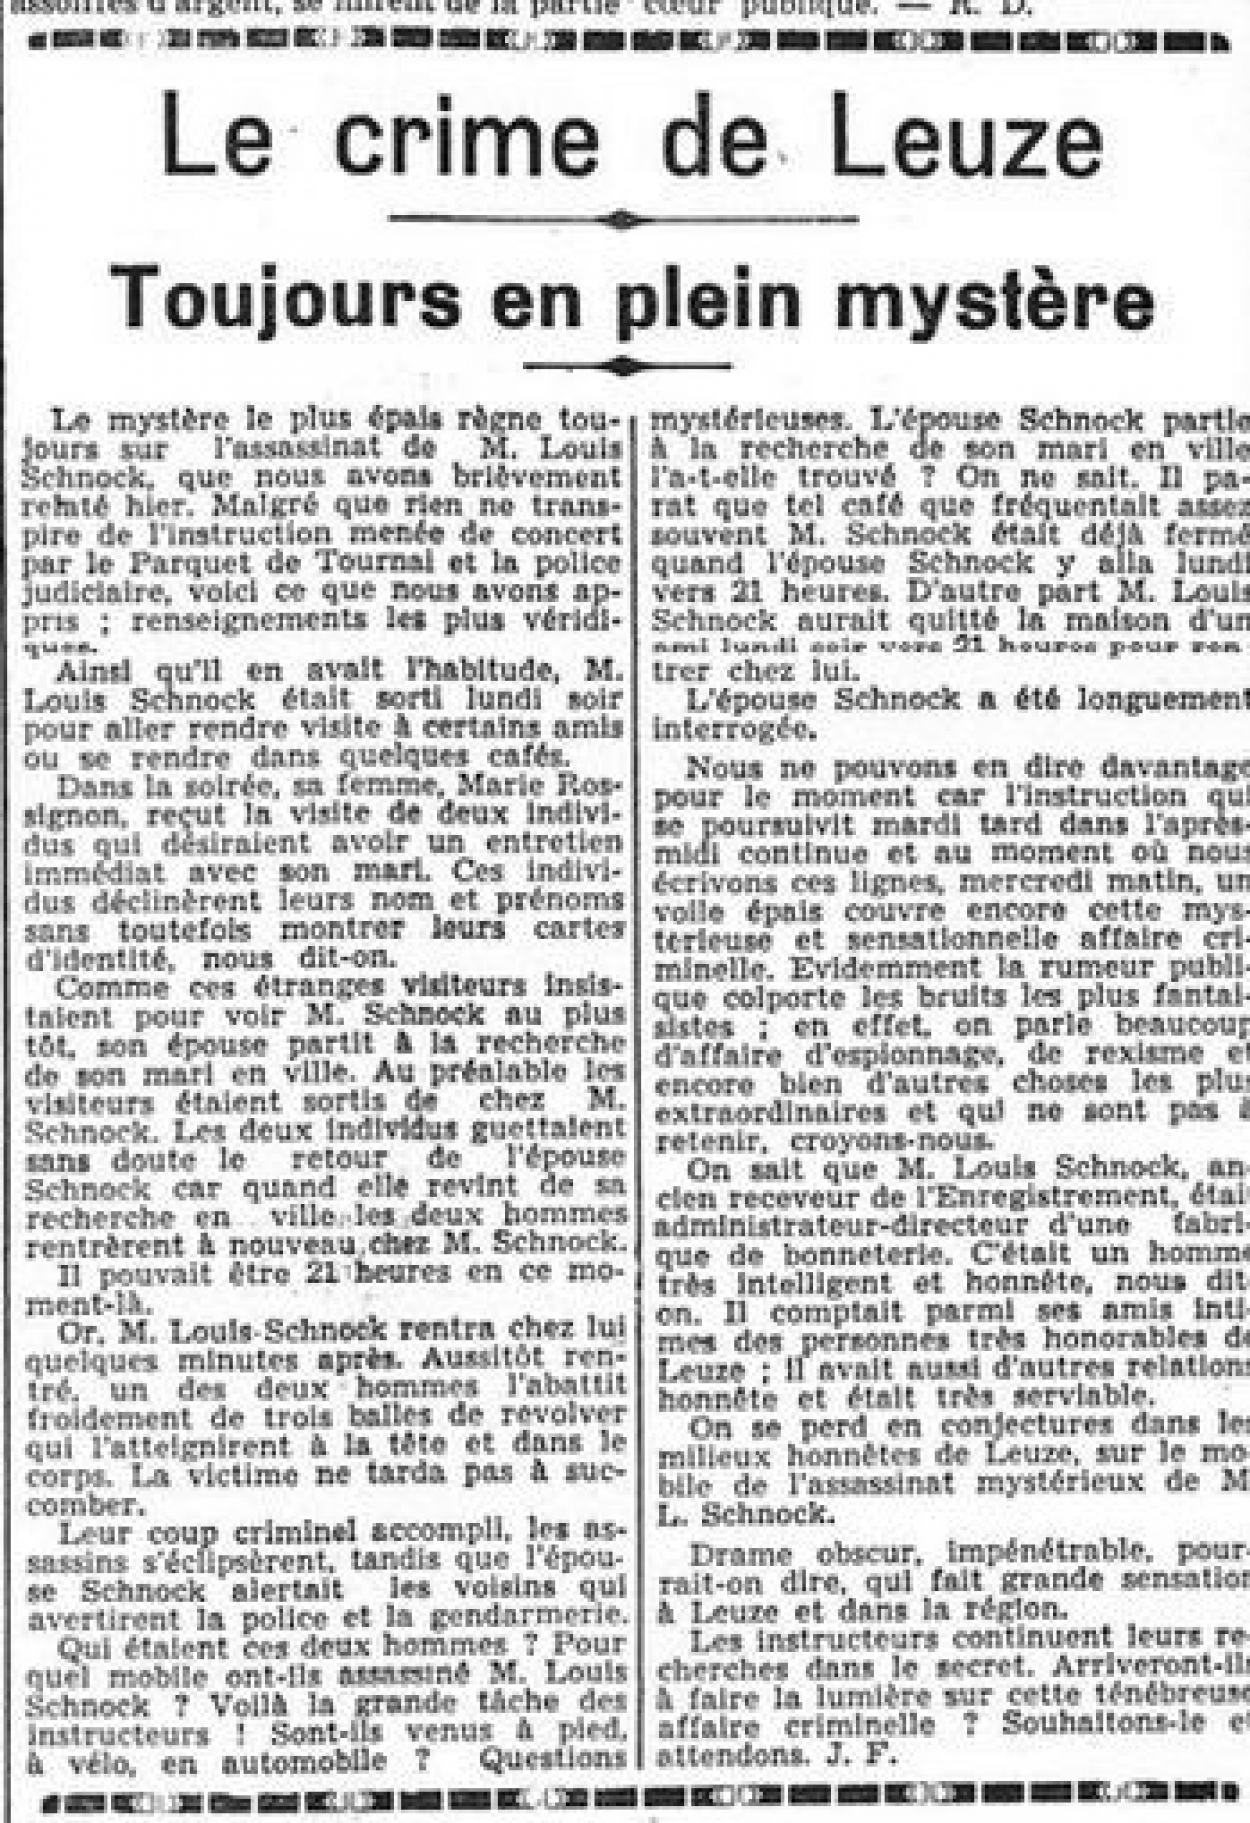 screenshot-2020-04-23-09-56-35-journal-de-charleroi-14-8-1941.jpg